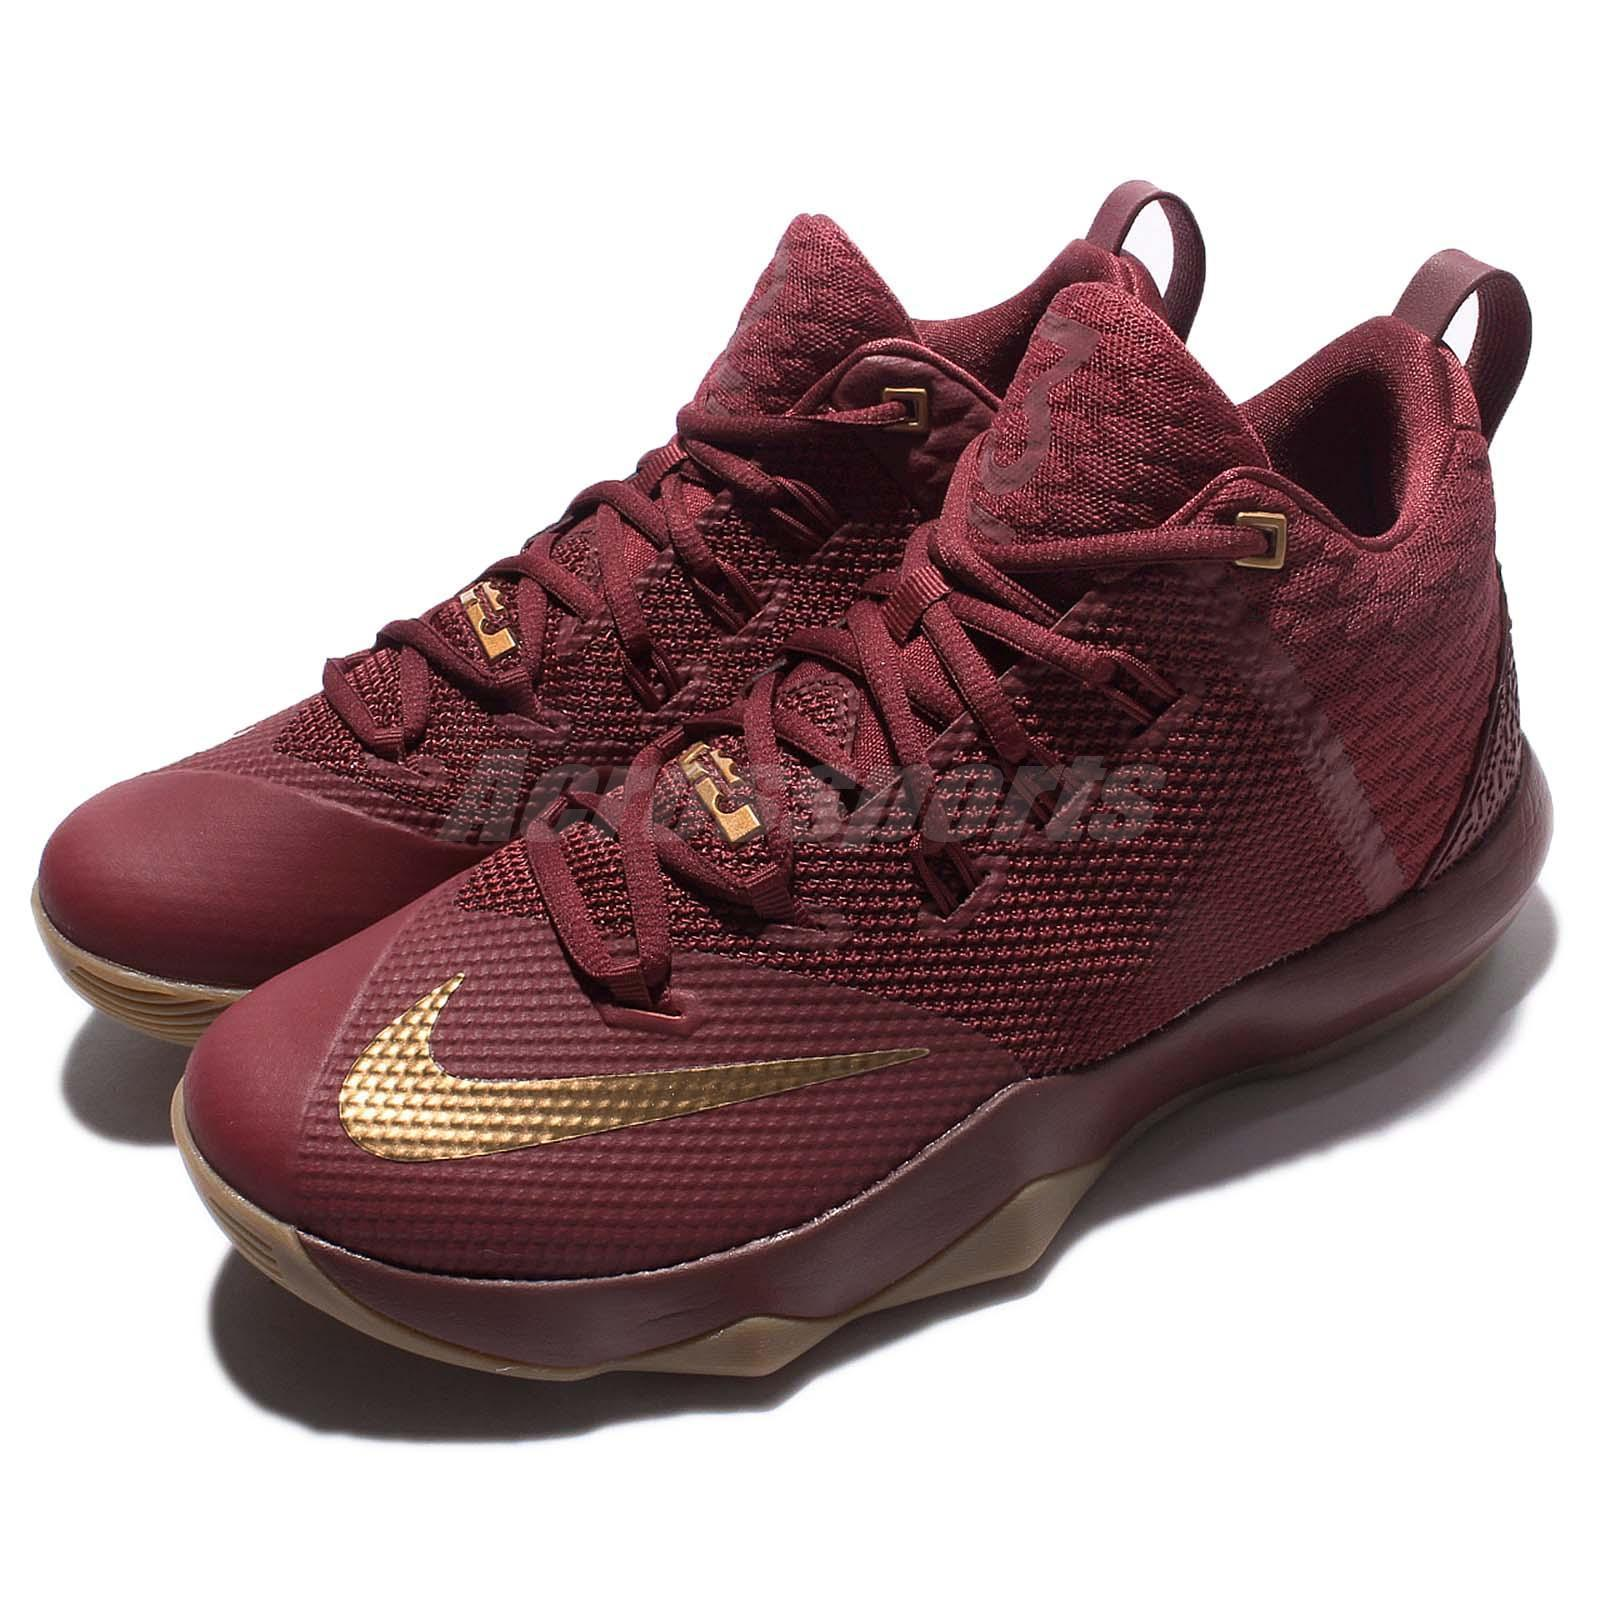 premium selection d0ee7 3d606 Nike Lebron Ambassador 9 – Team red – Full